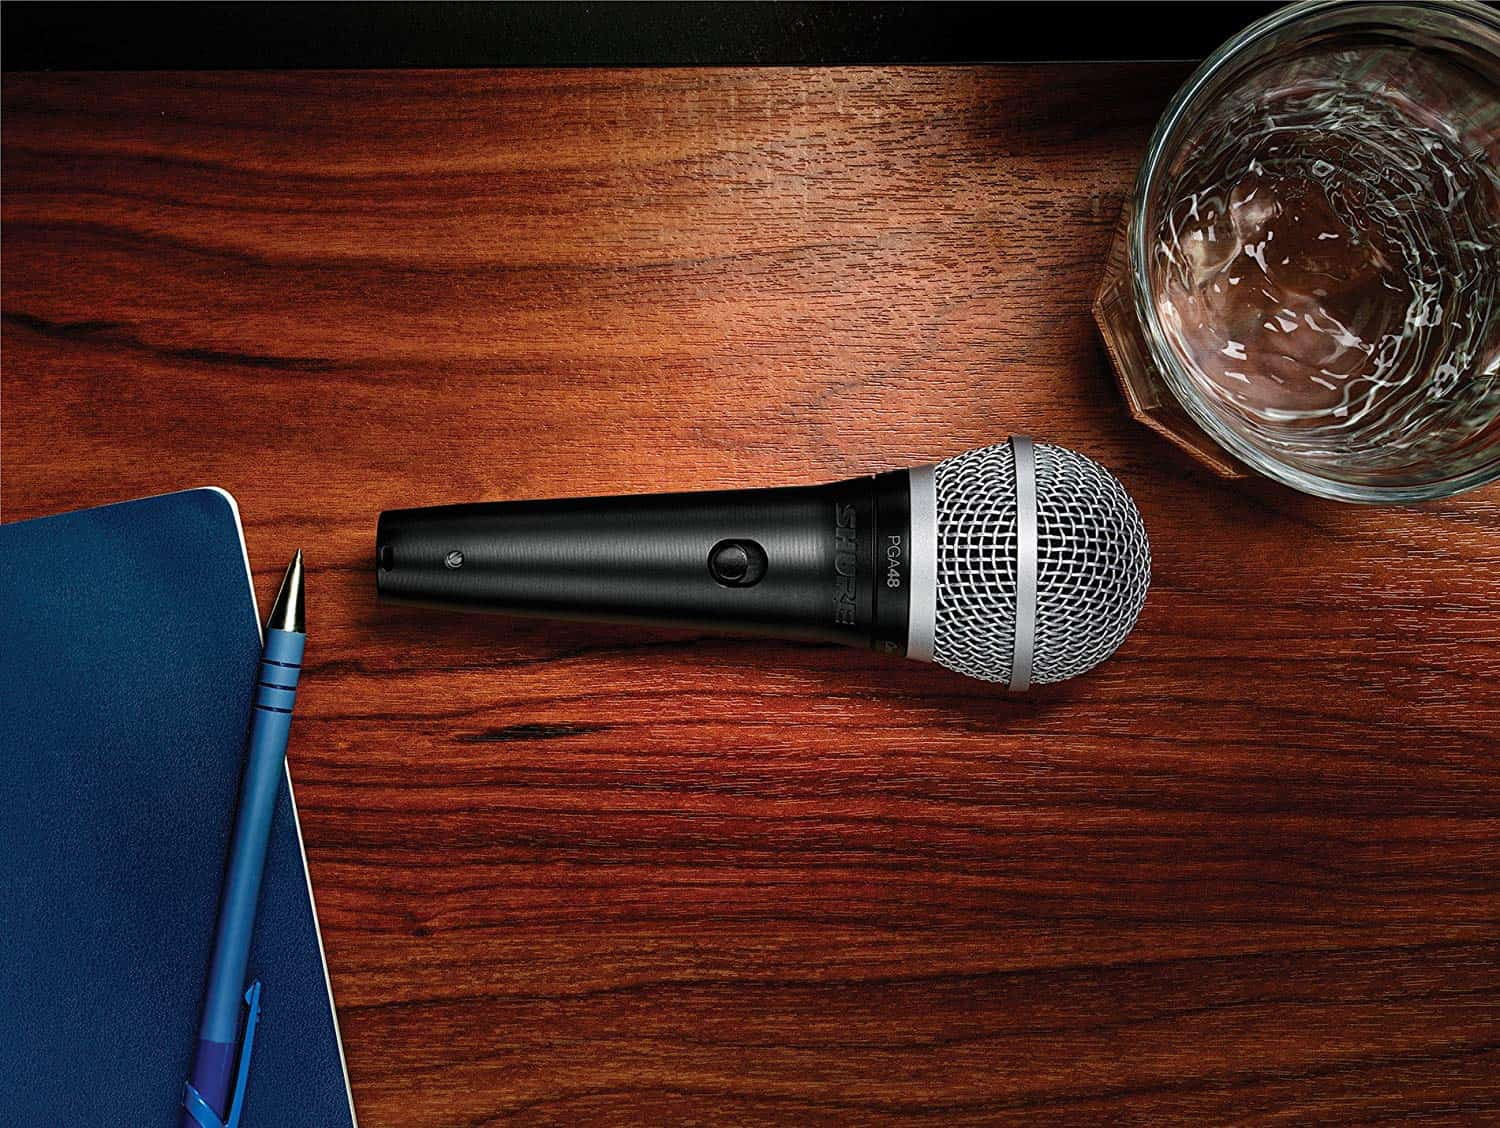 The best podcasting microphones for around $100